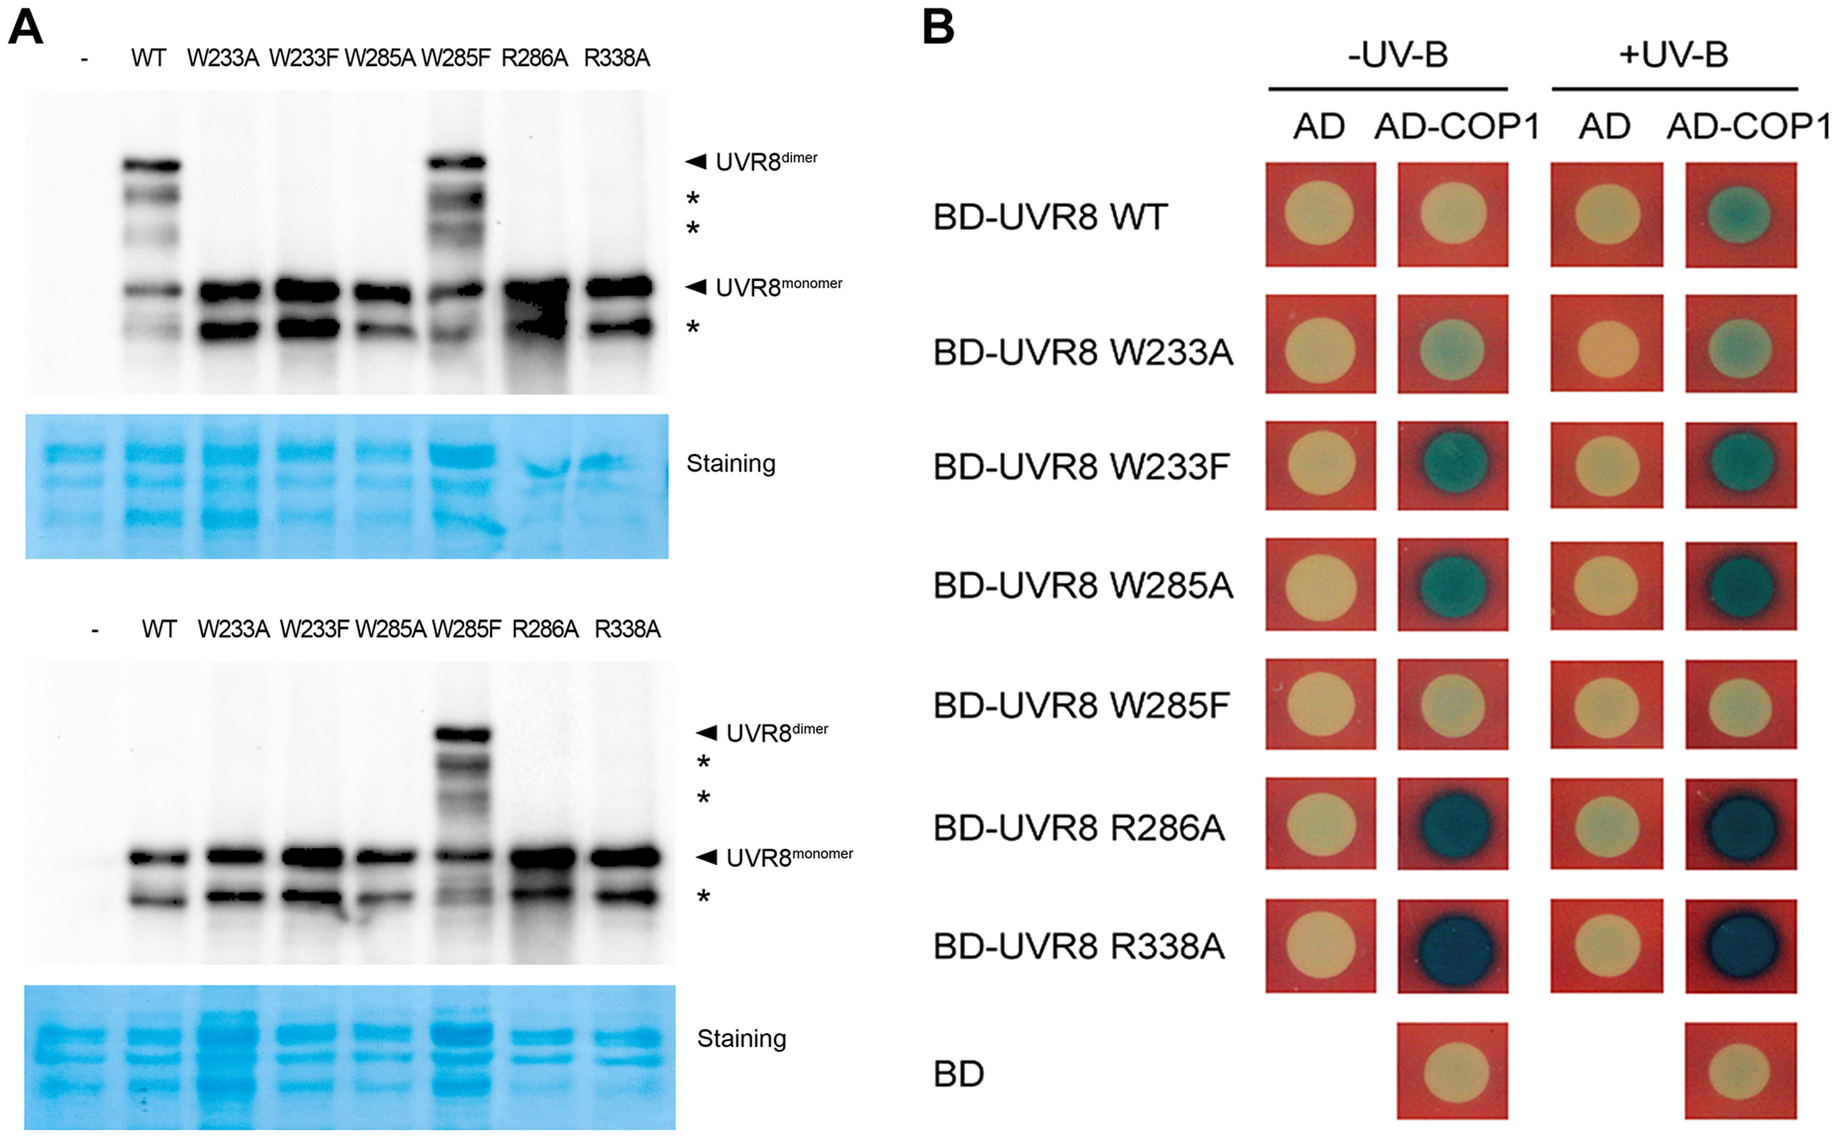 UVR8 variants display altered interaction with COP1 in yeast.